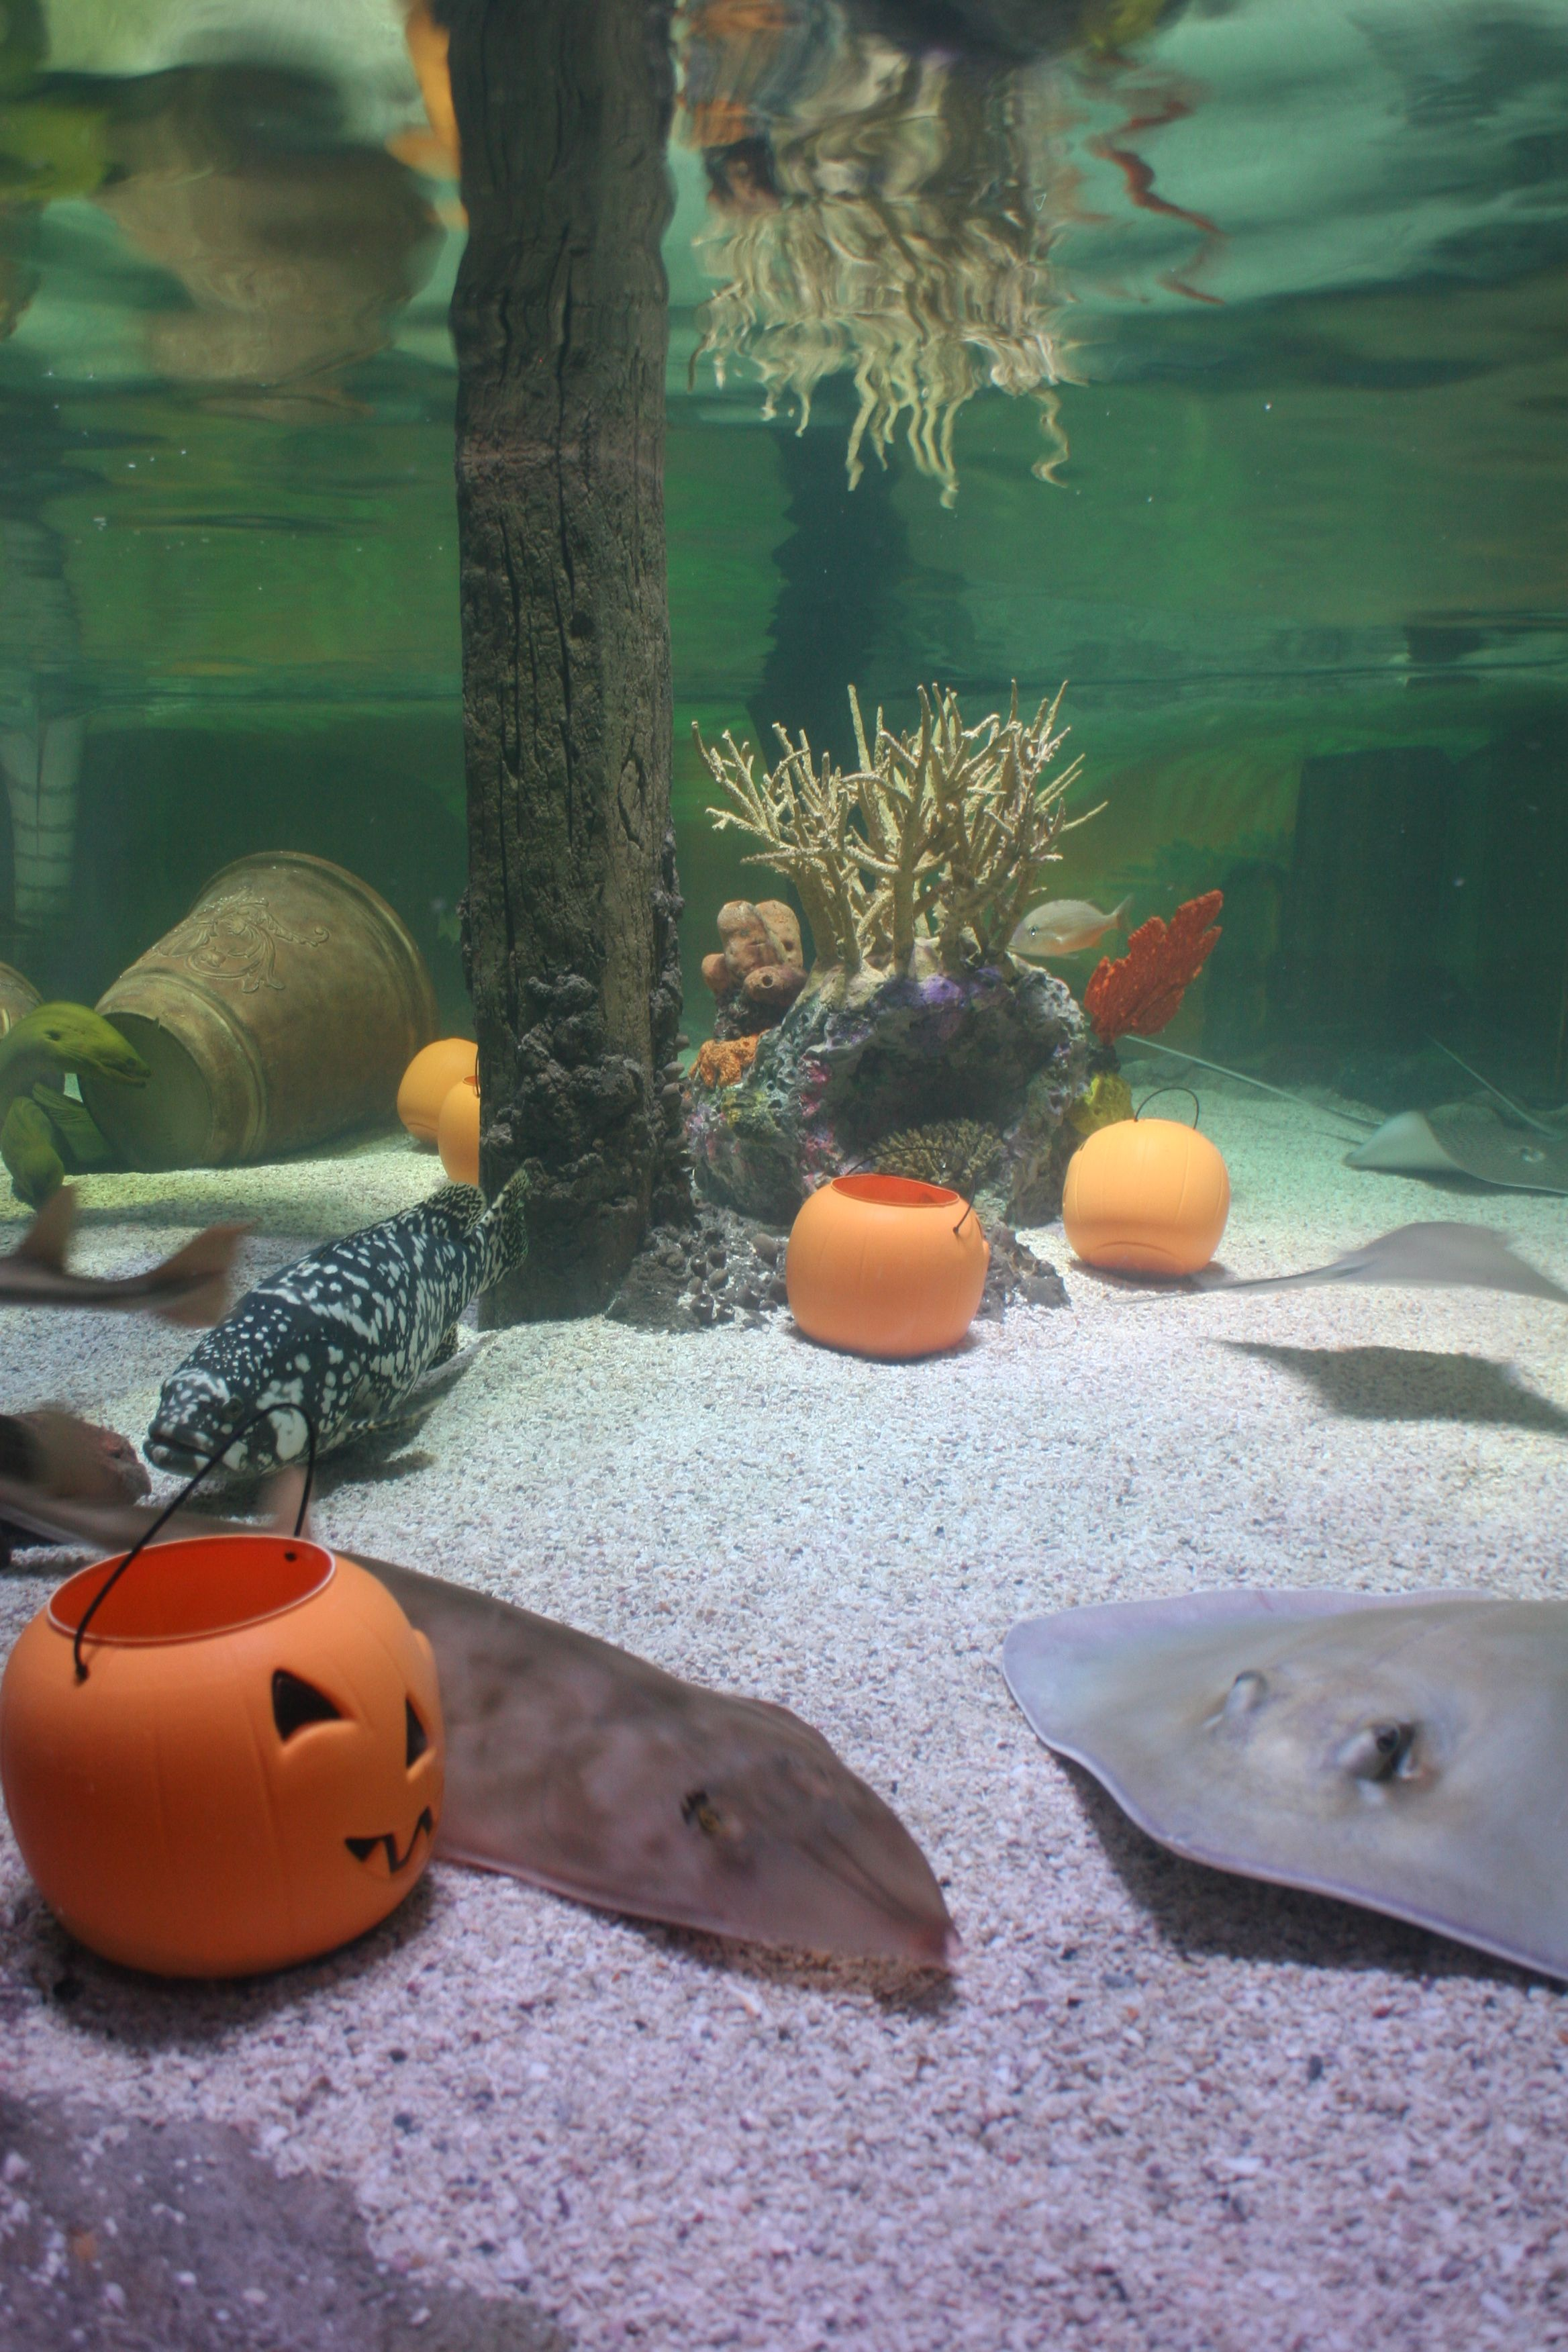 Ray Lagoon was transformed into a pumpkin patch just in time for